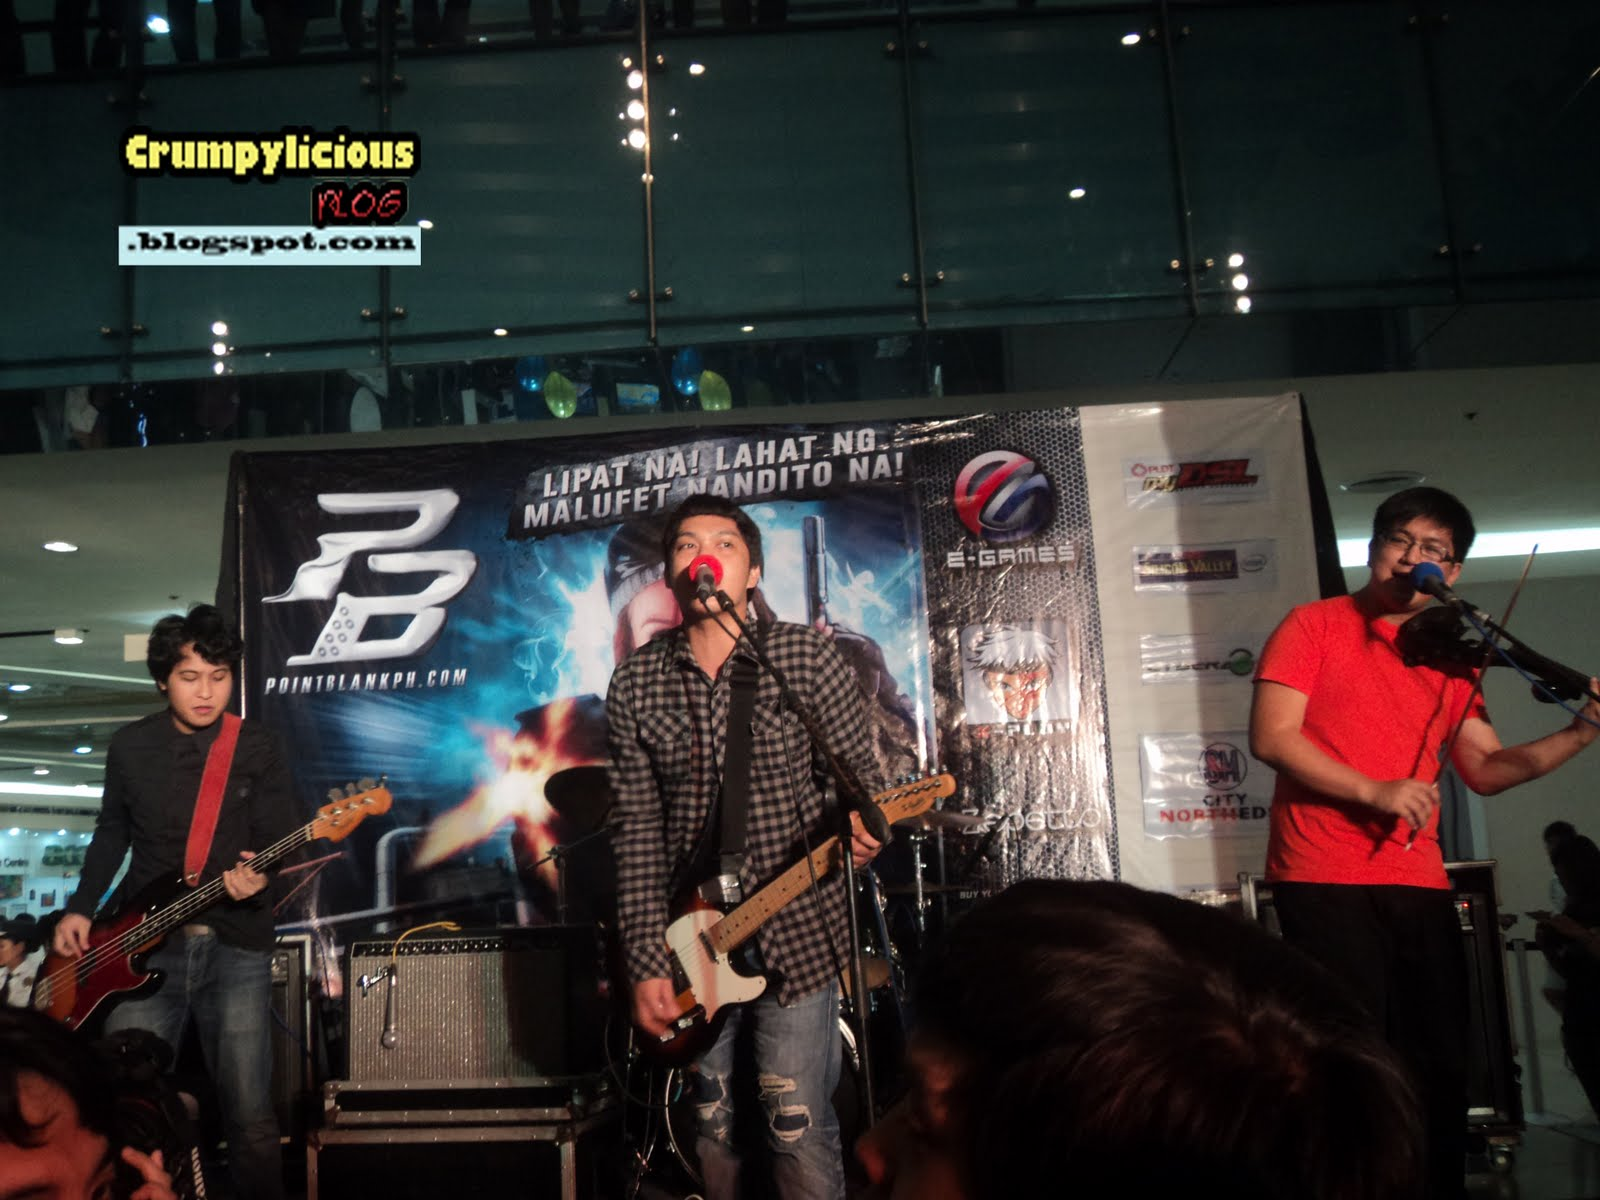 and of course some musical entertainment from silent sanctuary